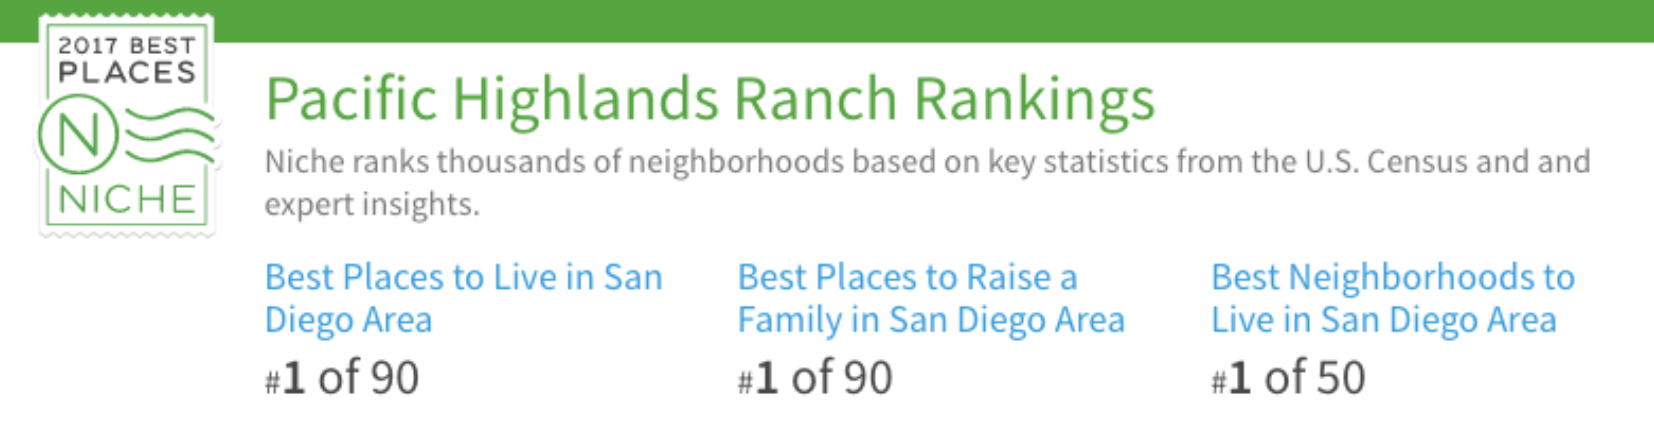 pacific-highlands-ranch-best-places-to-live-in-san-diego.png